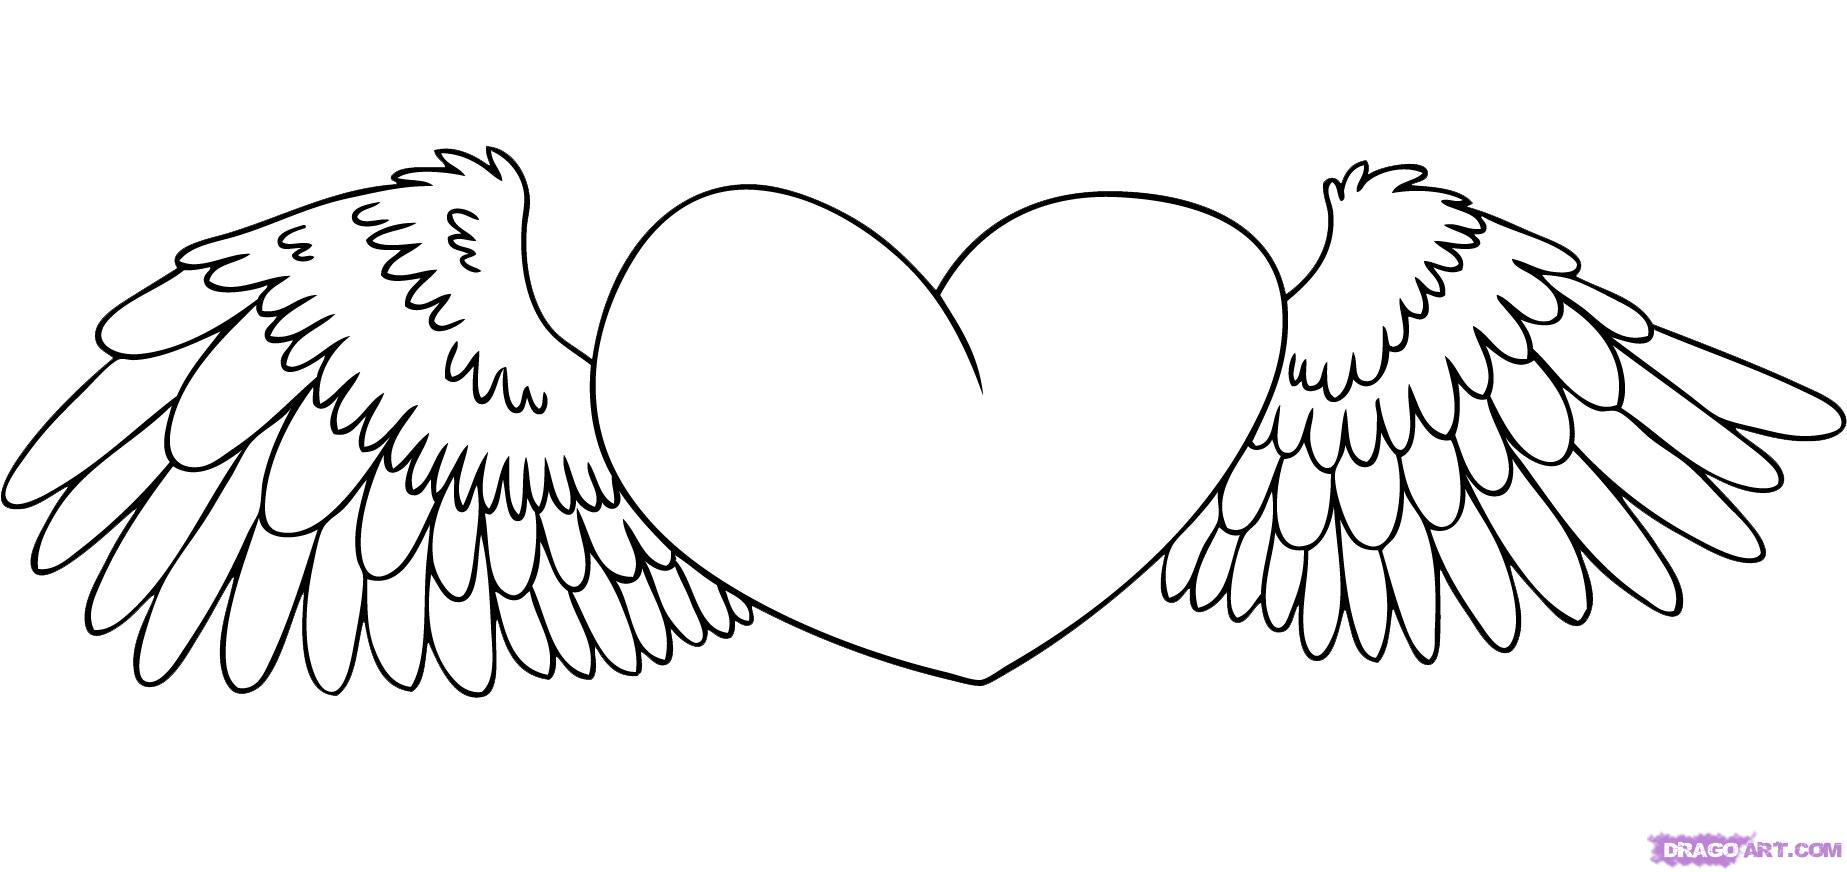 Coloring page x wing - Heart With Wings Coloring Pages